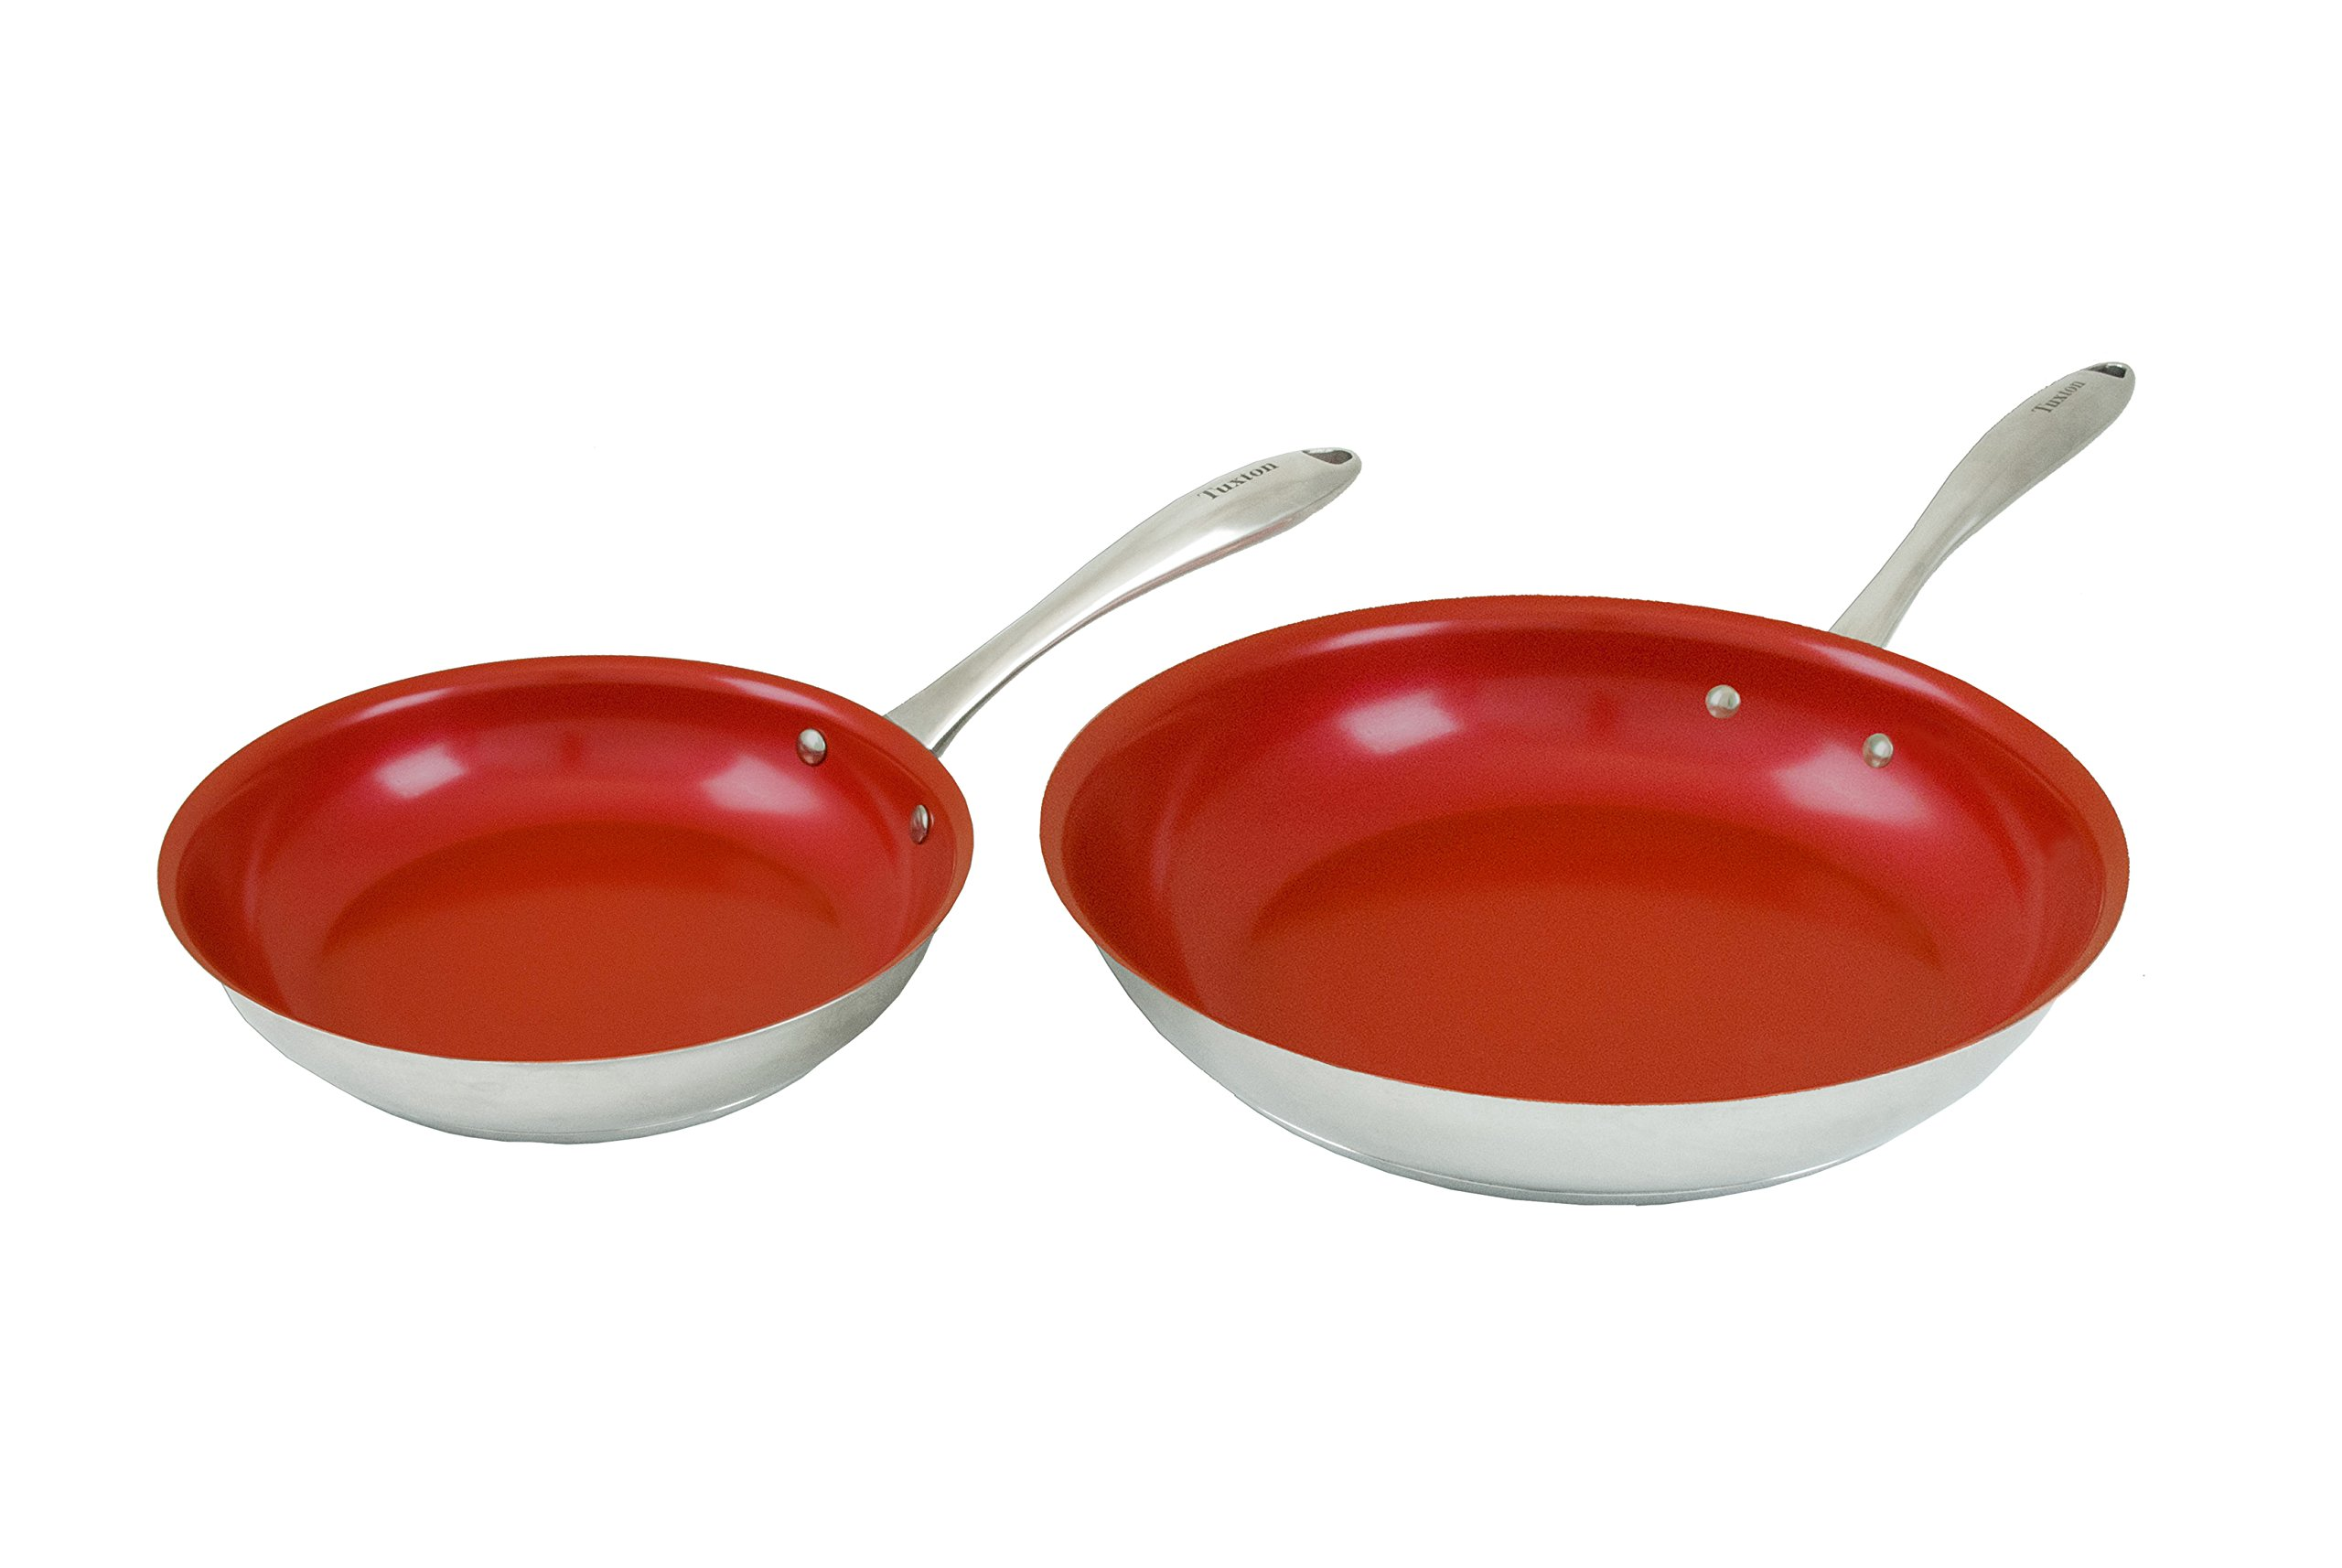 Tuxton Home Concentrix Nonstick Color Frypans, 8'' and 11'', Cayenne Red; Stainless Steel with Ceramic Nonstick Coating, Stainless Steel, PFTE & PFOA Free, Freezer to Oven Safe, Induction Compatible